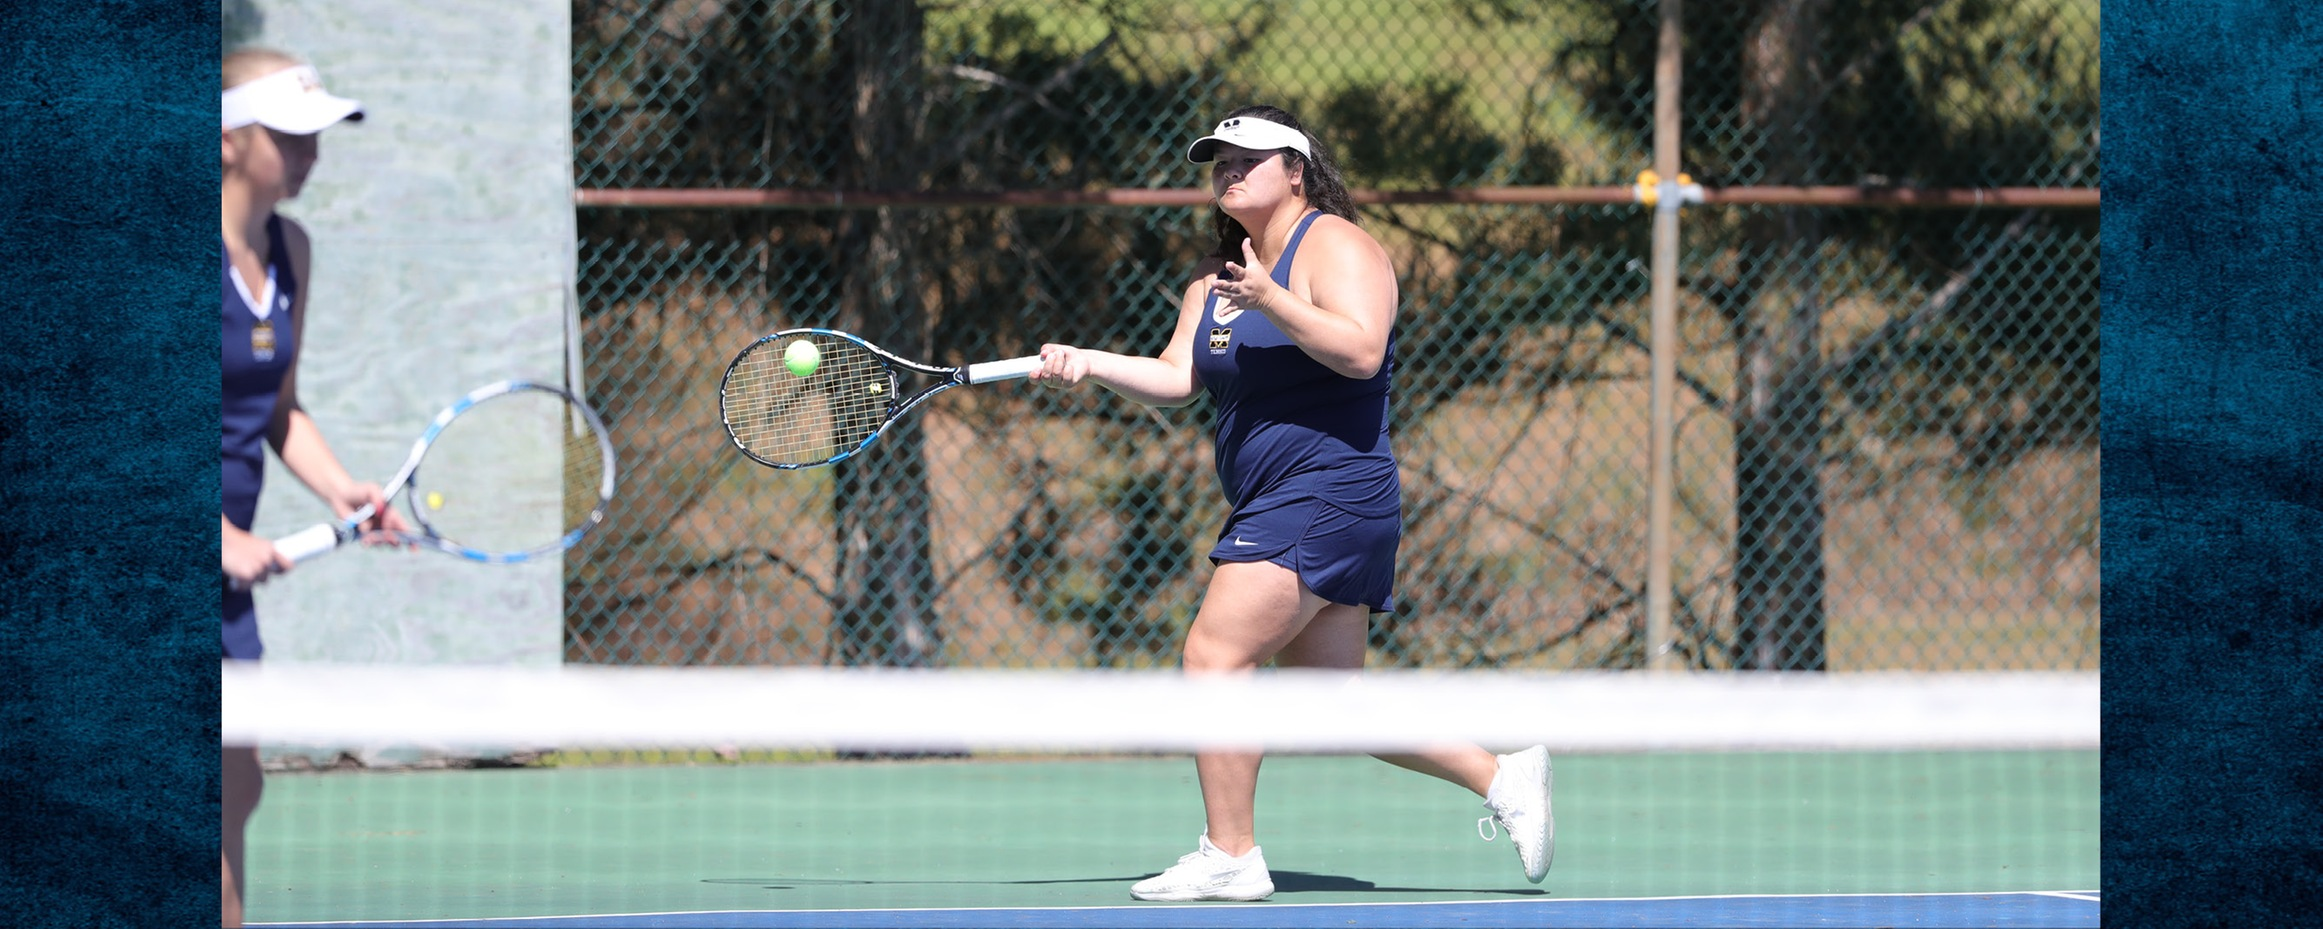 Lopareva, Bankston win twice at ICC